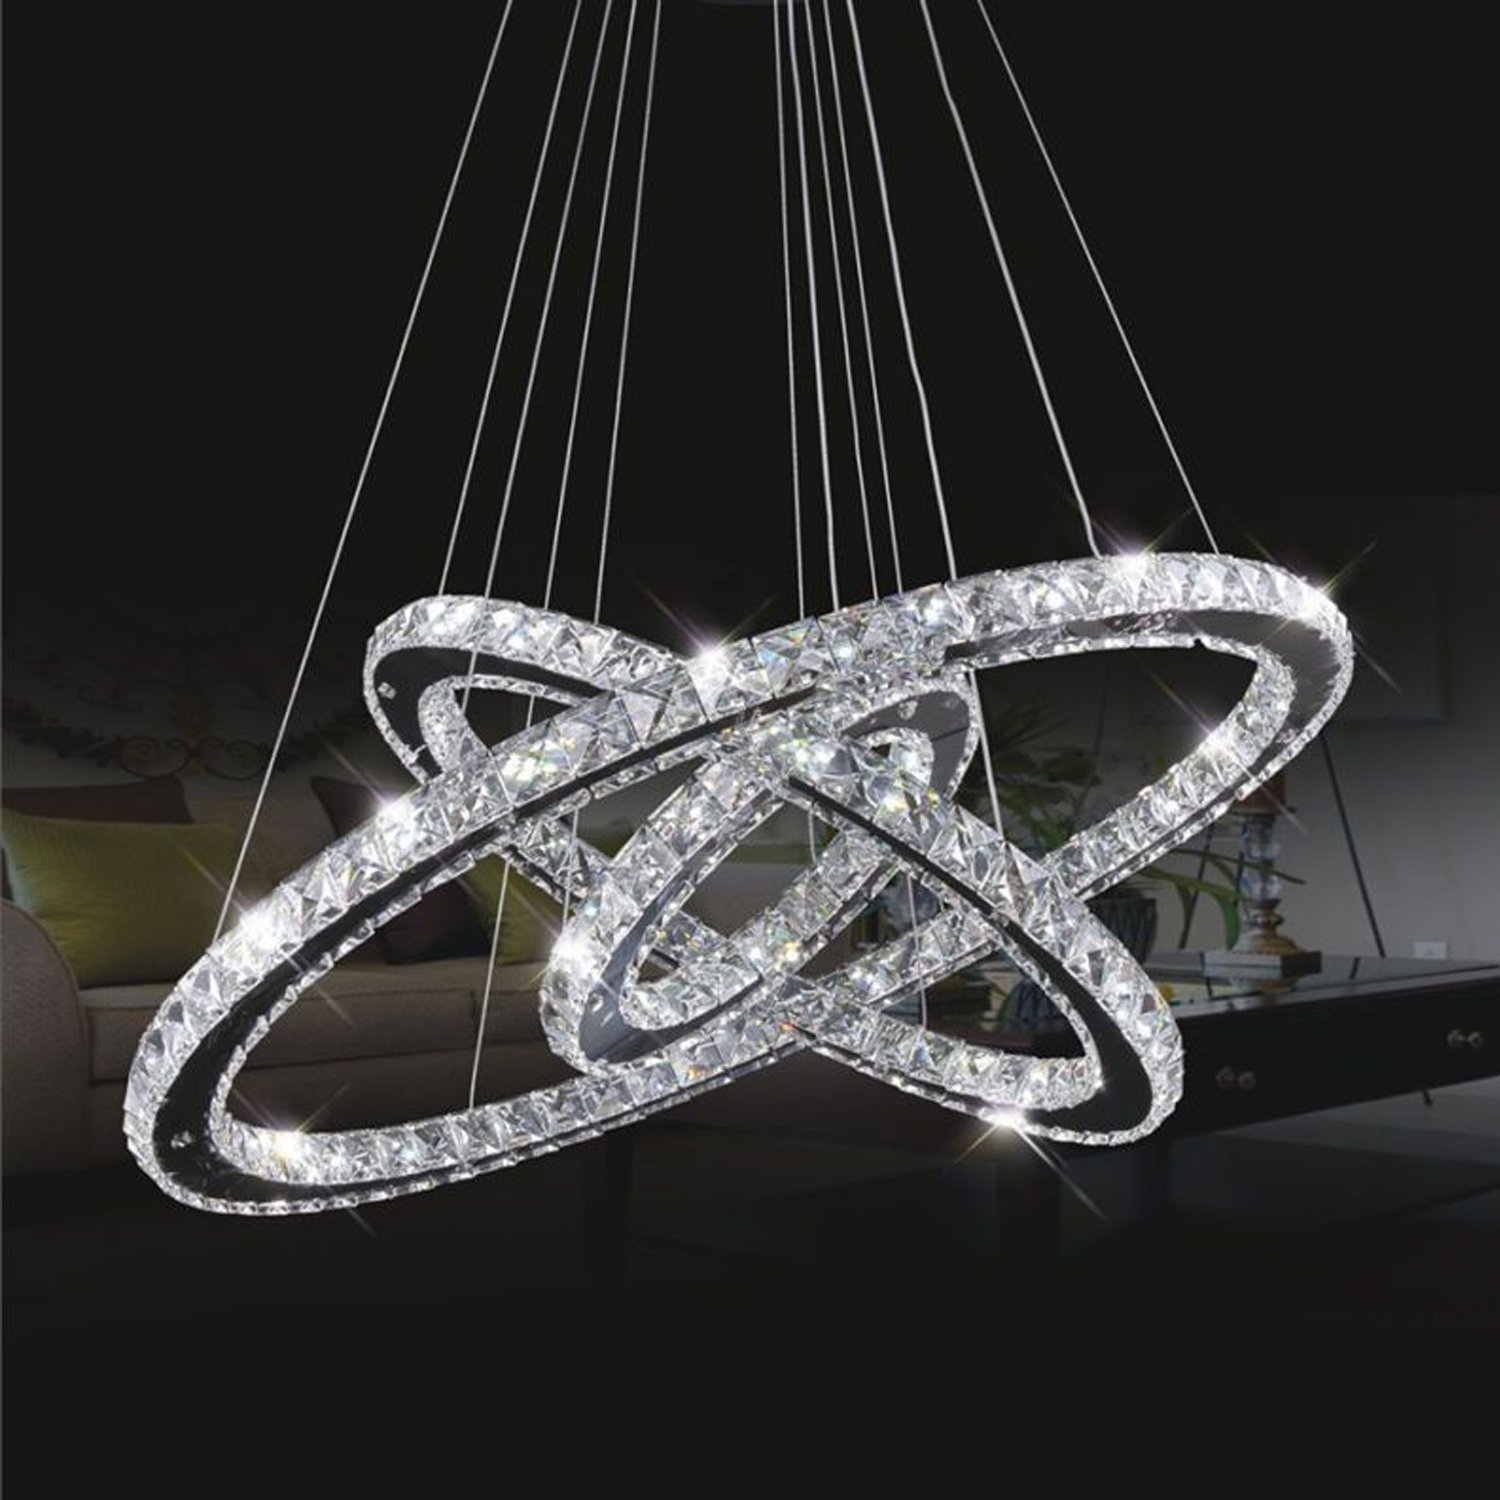 Crystal ceiling light topmax led pendant light 30 50 70 cm 3 crystal ceiling light topmax led pendant light 30 50 70 cm 3 rings crystal chrome cold white a amazon kitchen home mozeypictures Choice Image